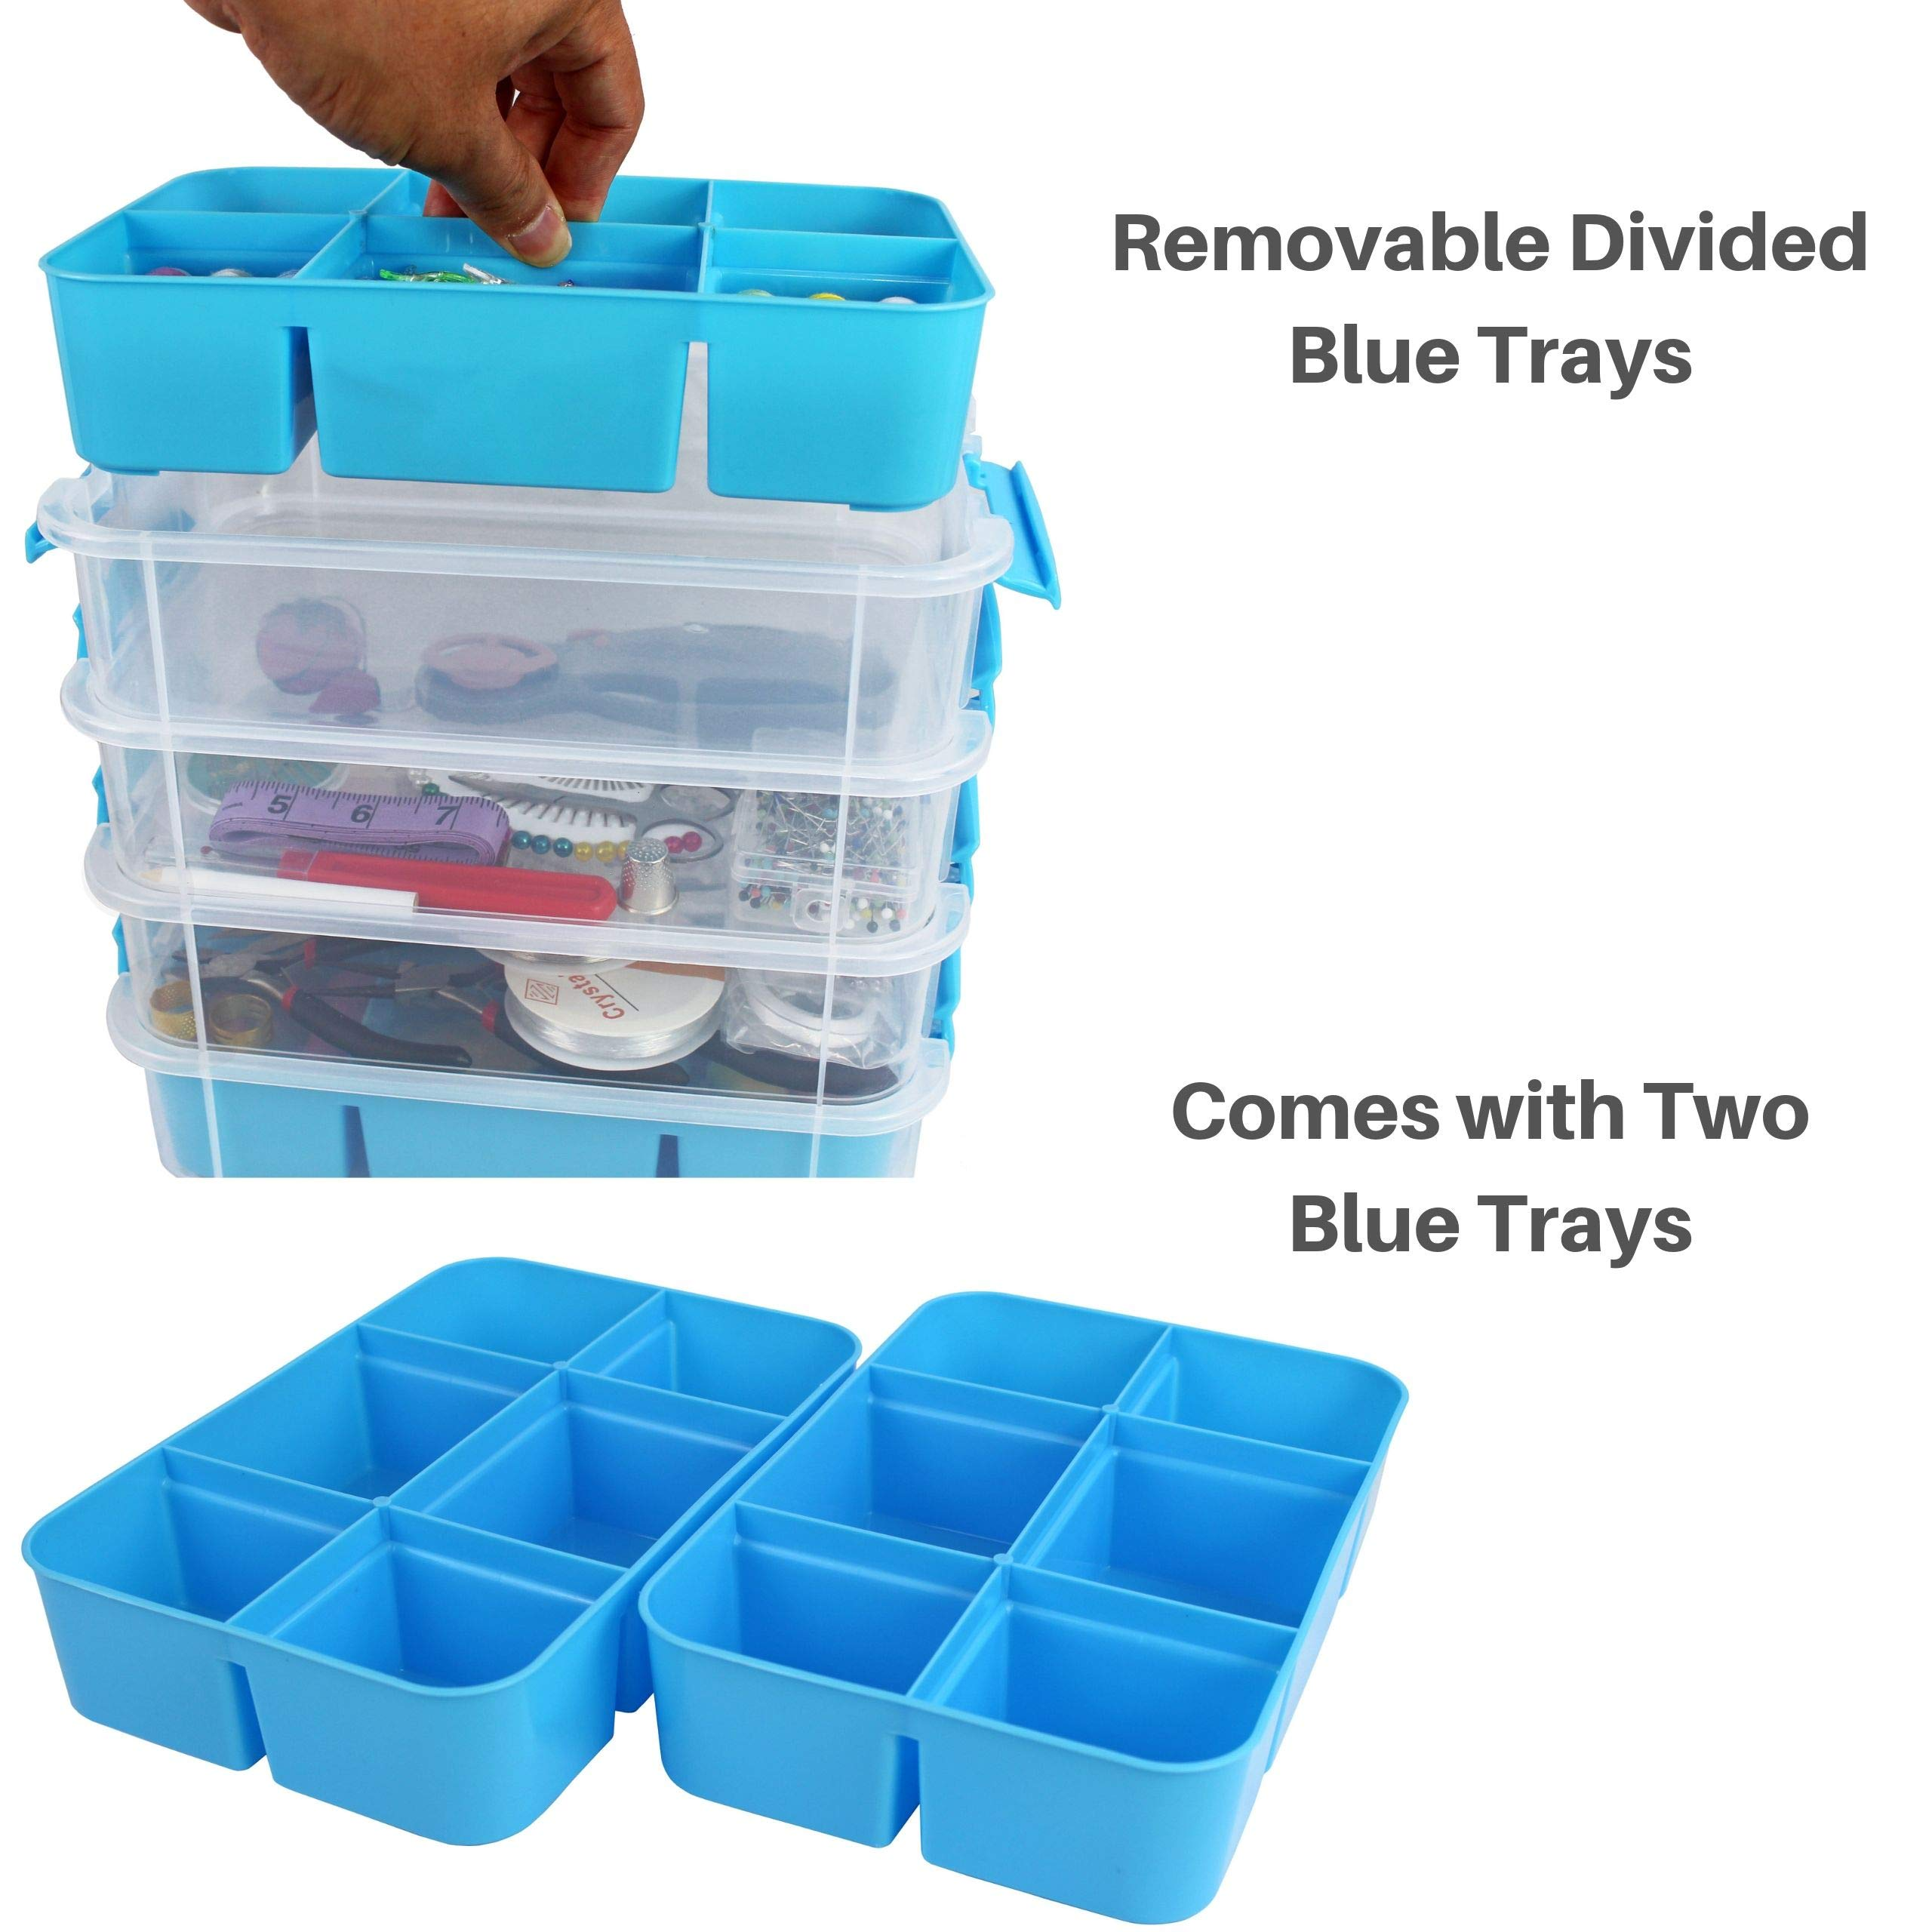 Stackable Plastic Storage Containers by Bins & Things | Plastic Storage Bin with 4 Trays | Bins for Arts Crafts Supplies | Jewelry Making Storage Box | Portable Storage Box